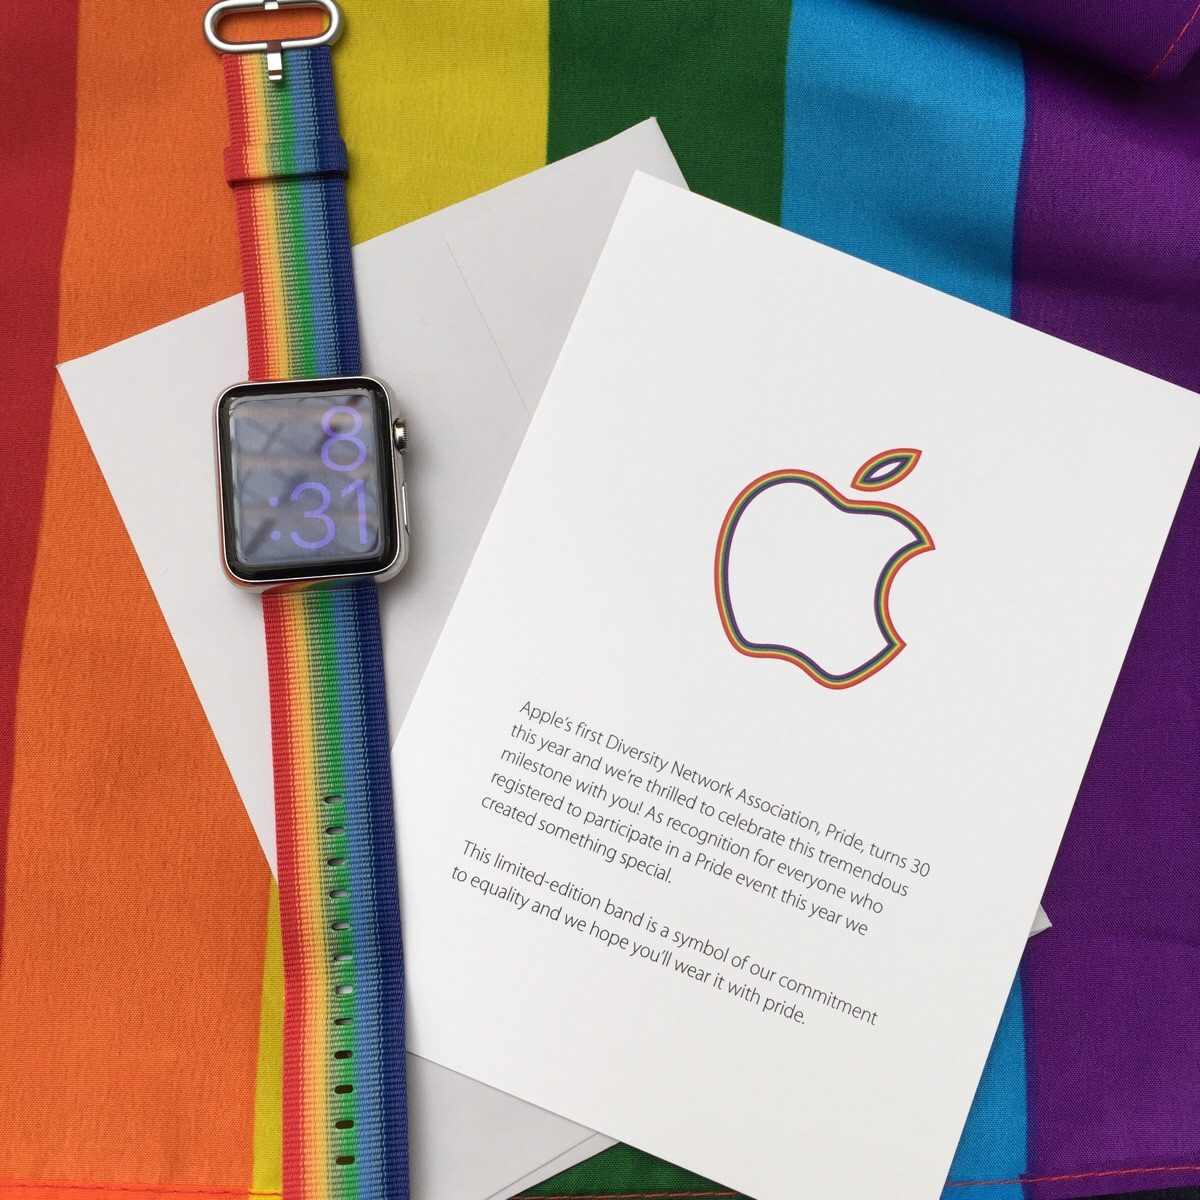 apple watch pride band 2016